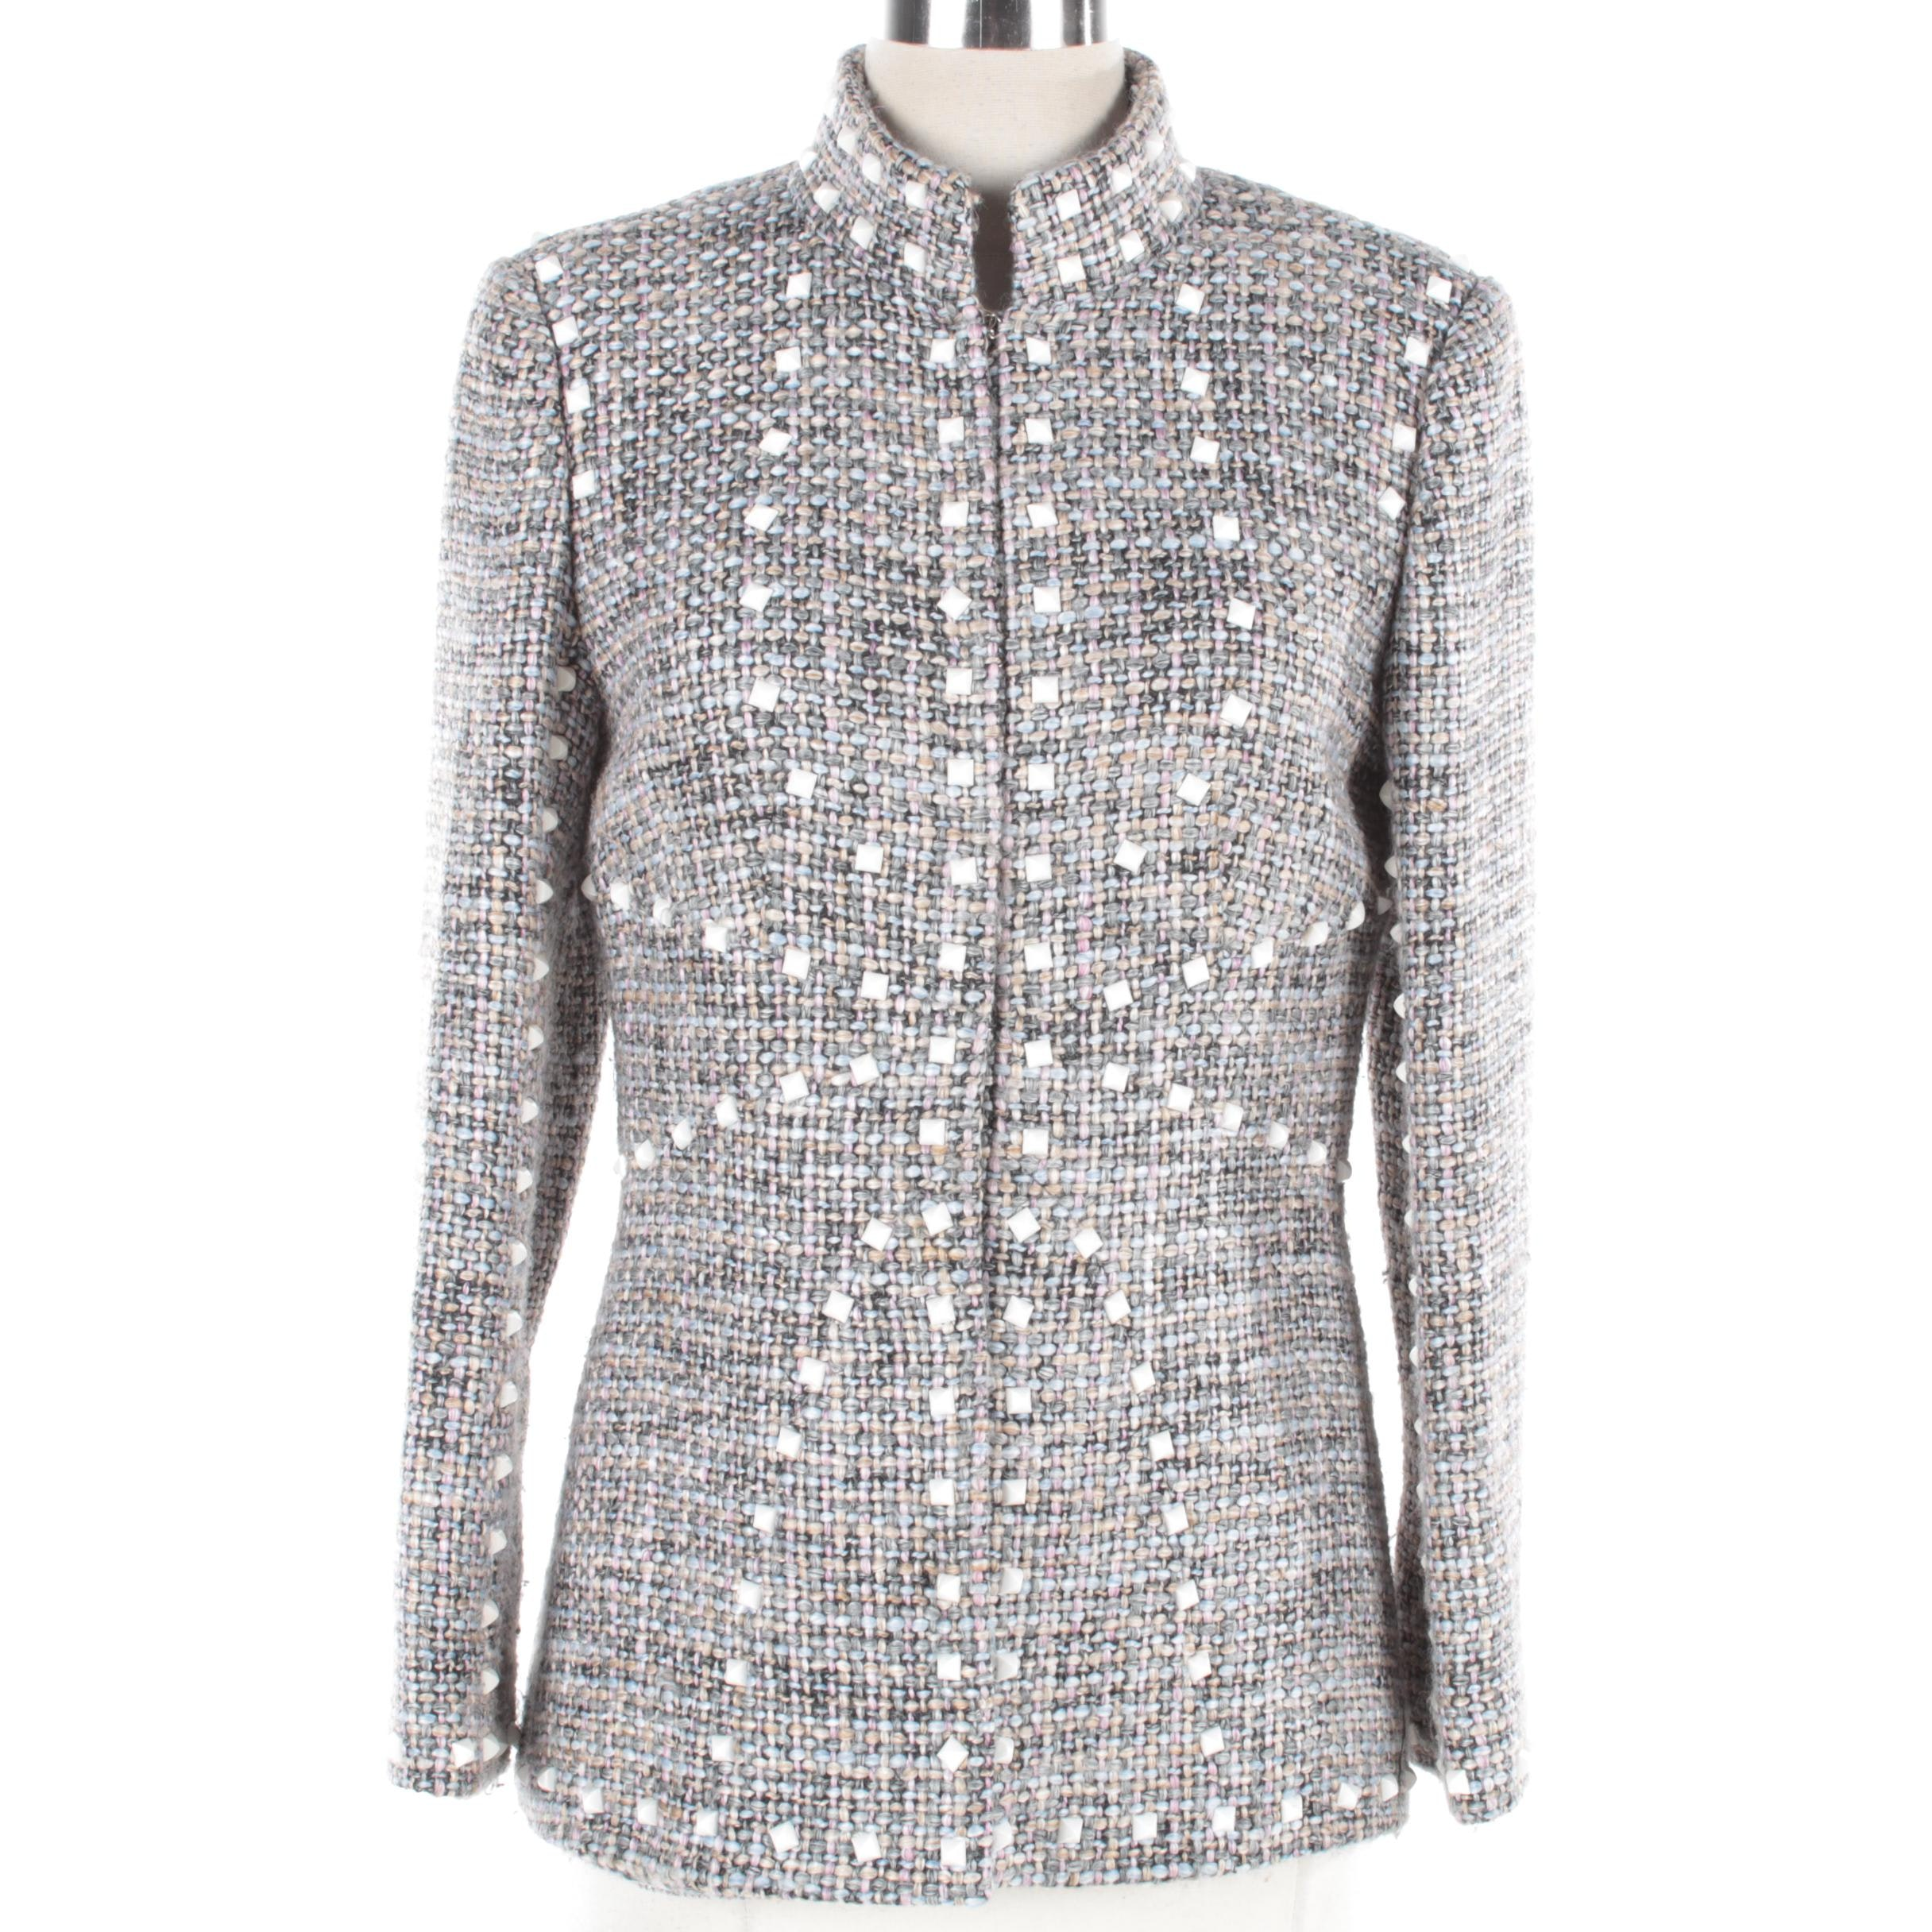 Chanel Autumn Winter 2003 Bouclé Tweed Jacket